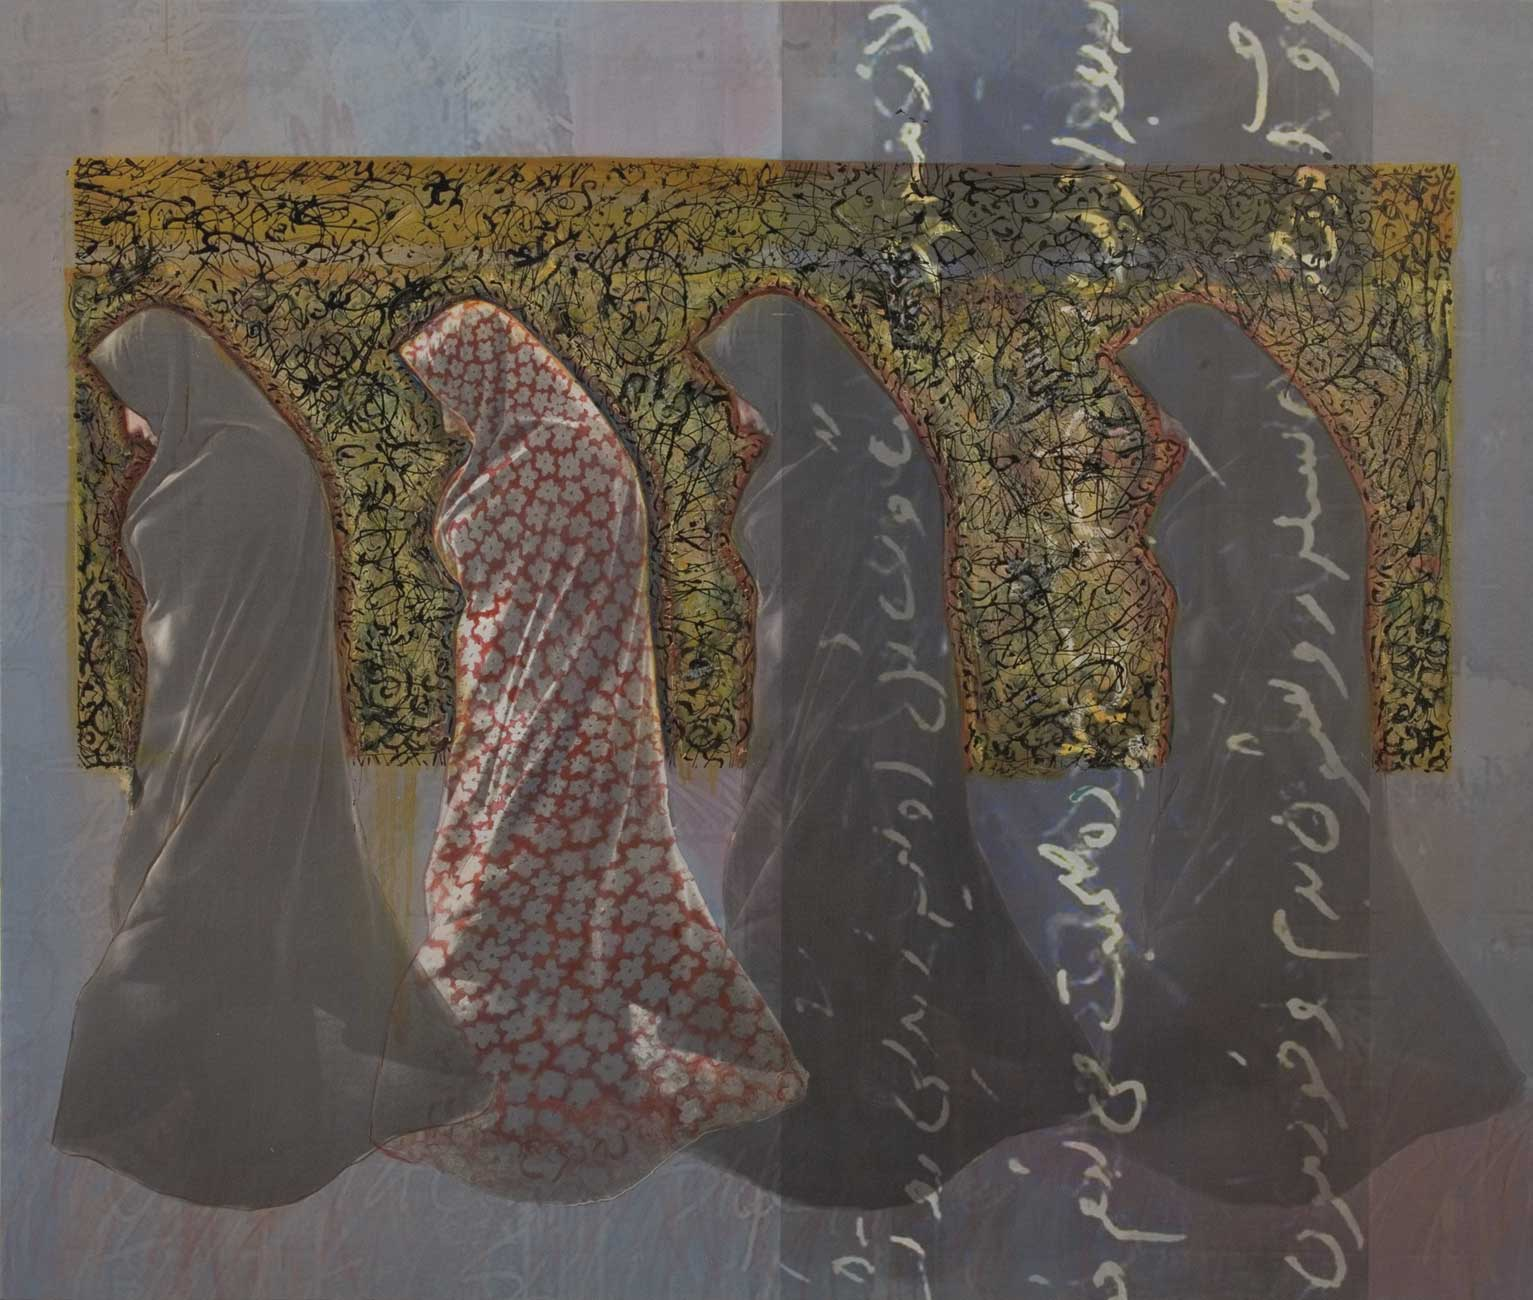 KOUS-0011-Koroush-Salehi_Walk-in-the-Right-Side_Mixed-media-on-canvas_110x130-cm_2011